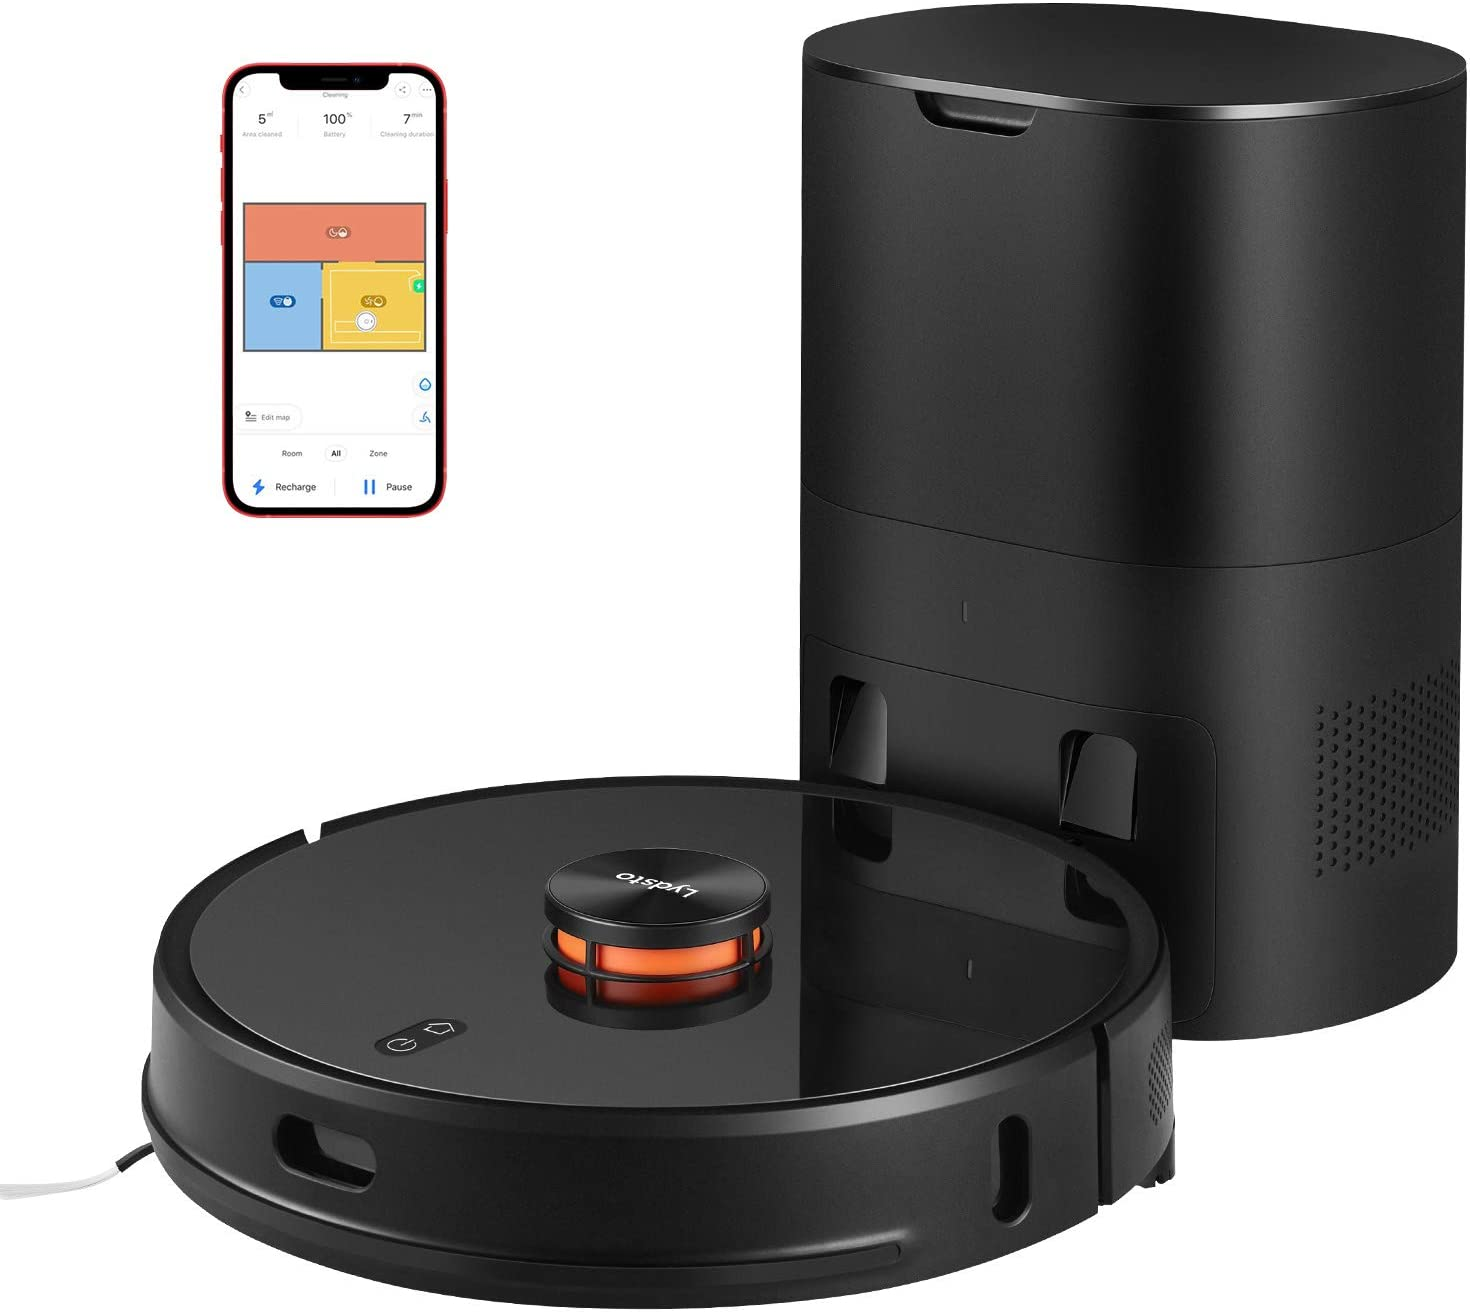 Robot Vacuum with Self Emptying Base,Smart Home Mapping,Robotic Vacuum and Mop,Wi-Fi Connected,2700Pa Suction,Quiet and Self-Charging,Lidar Navigation,Good for Carpets,Hardwood Floors,Black